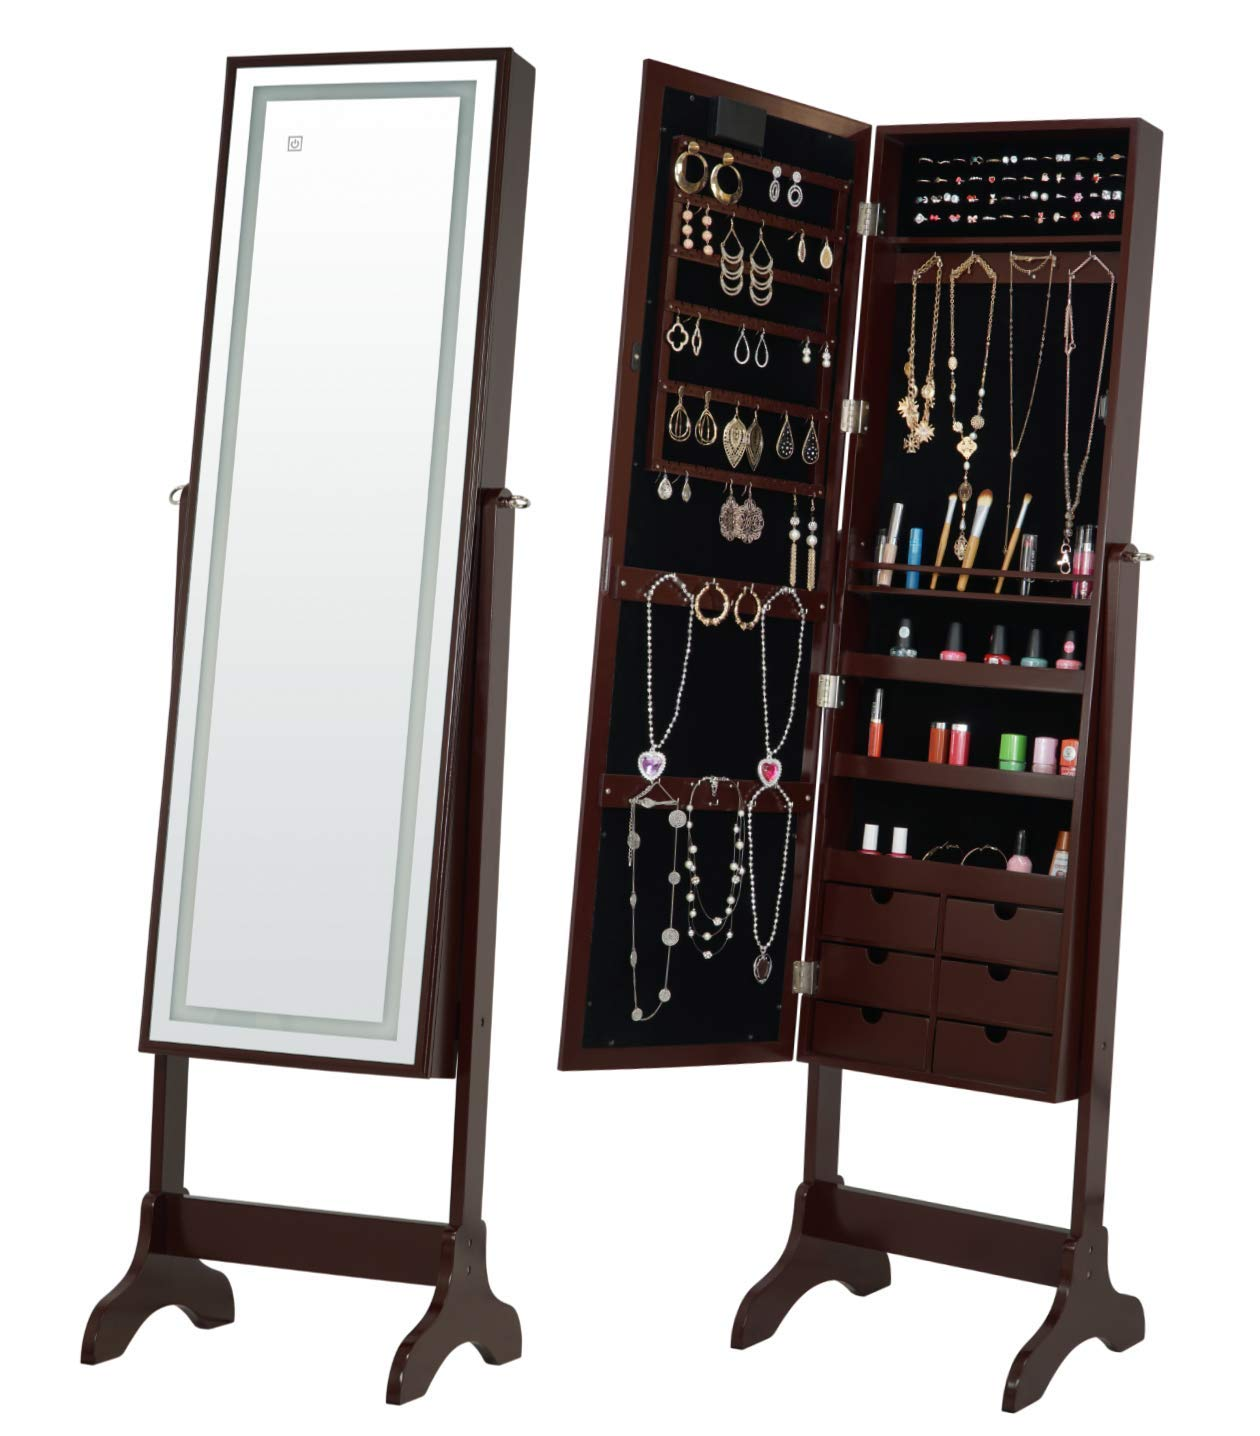 Fineboard FB-JC06-BN LED Jewelry Cabinet Organizer with Mirror & 6 Small Drawers, Brown